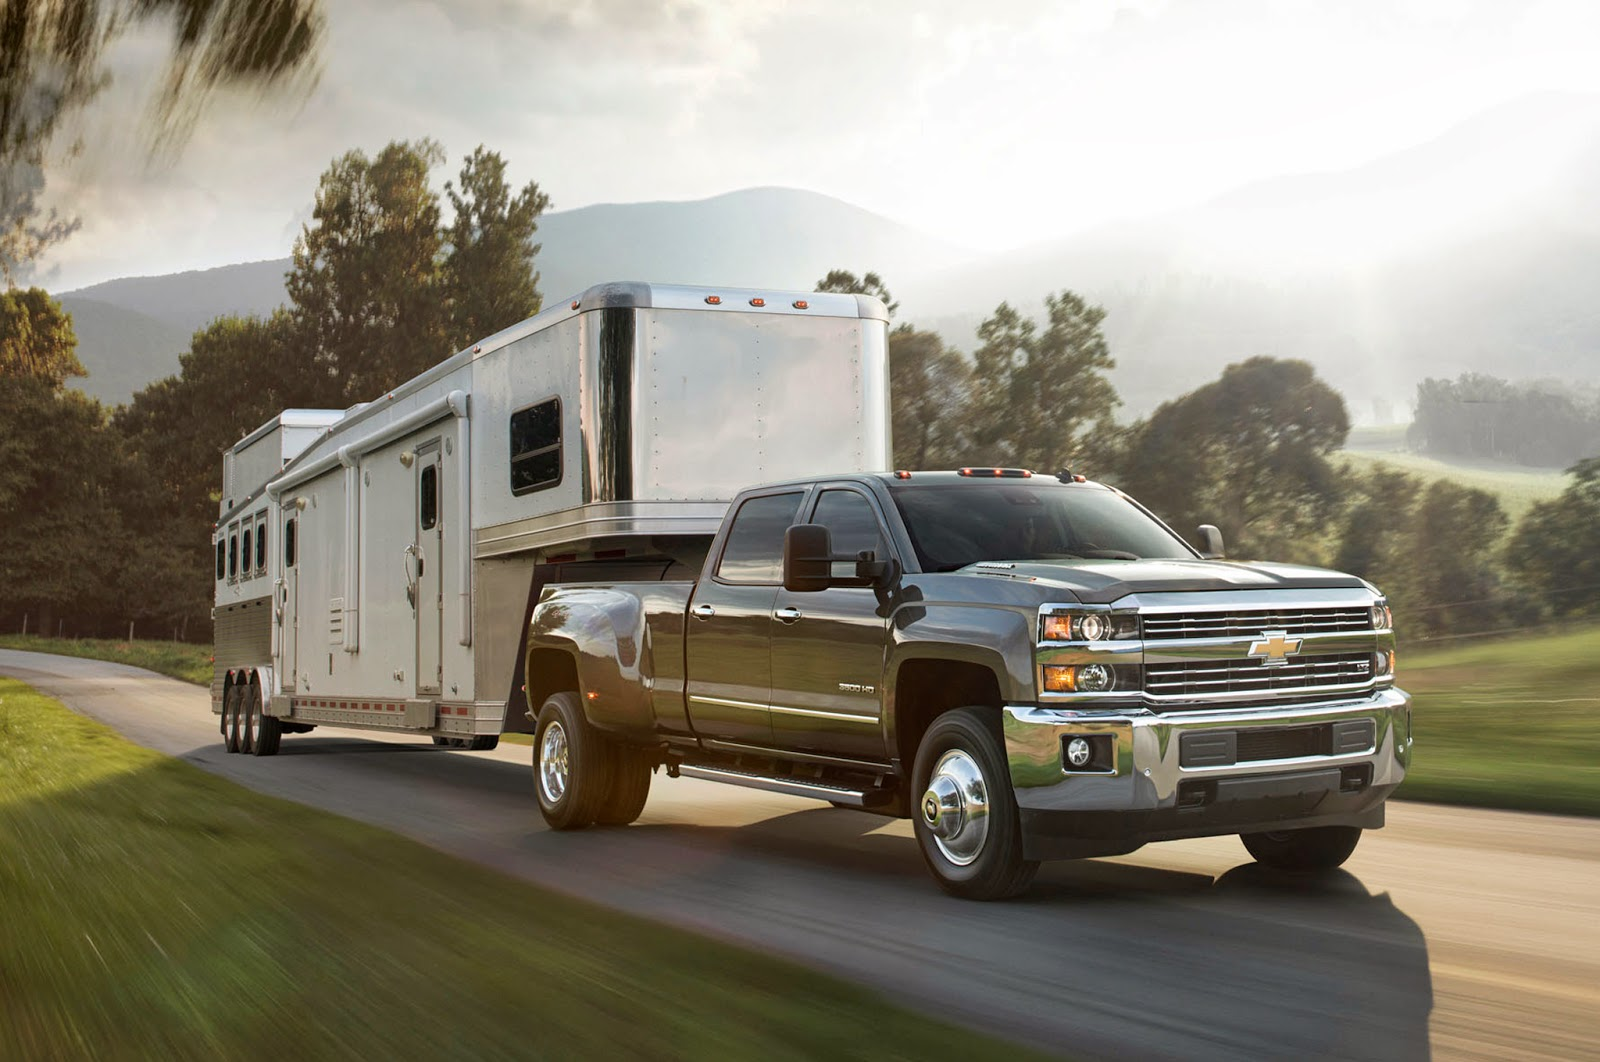 2015 Chevrolet Silverado 3500 HD Shows Its Strengths